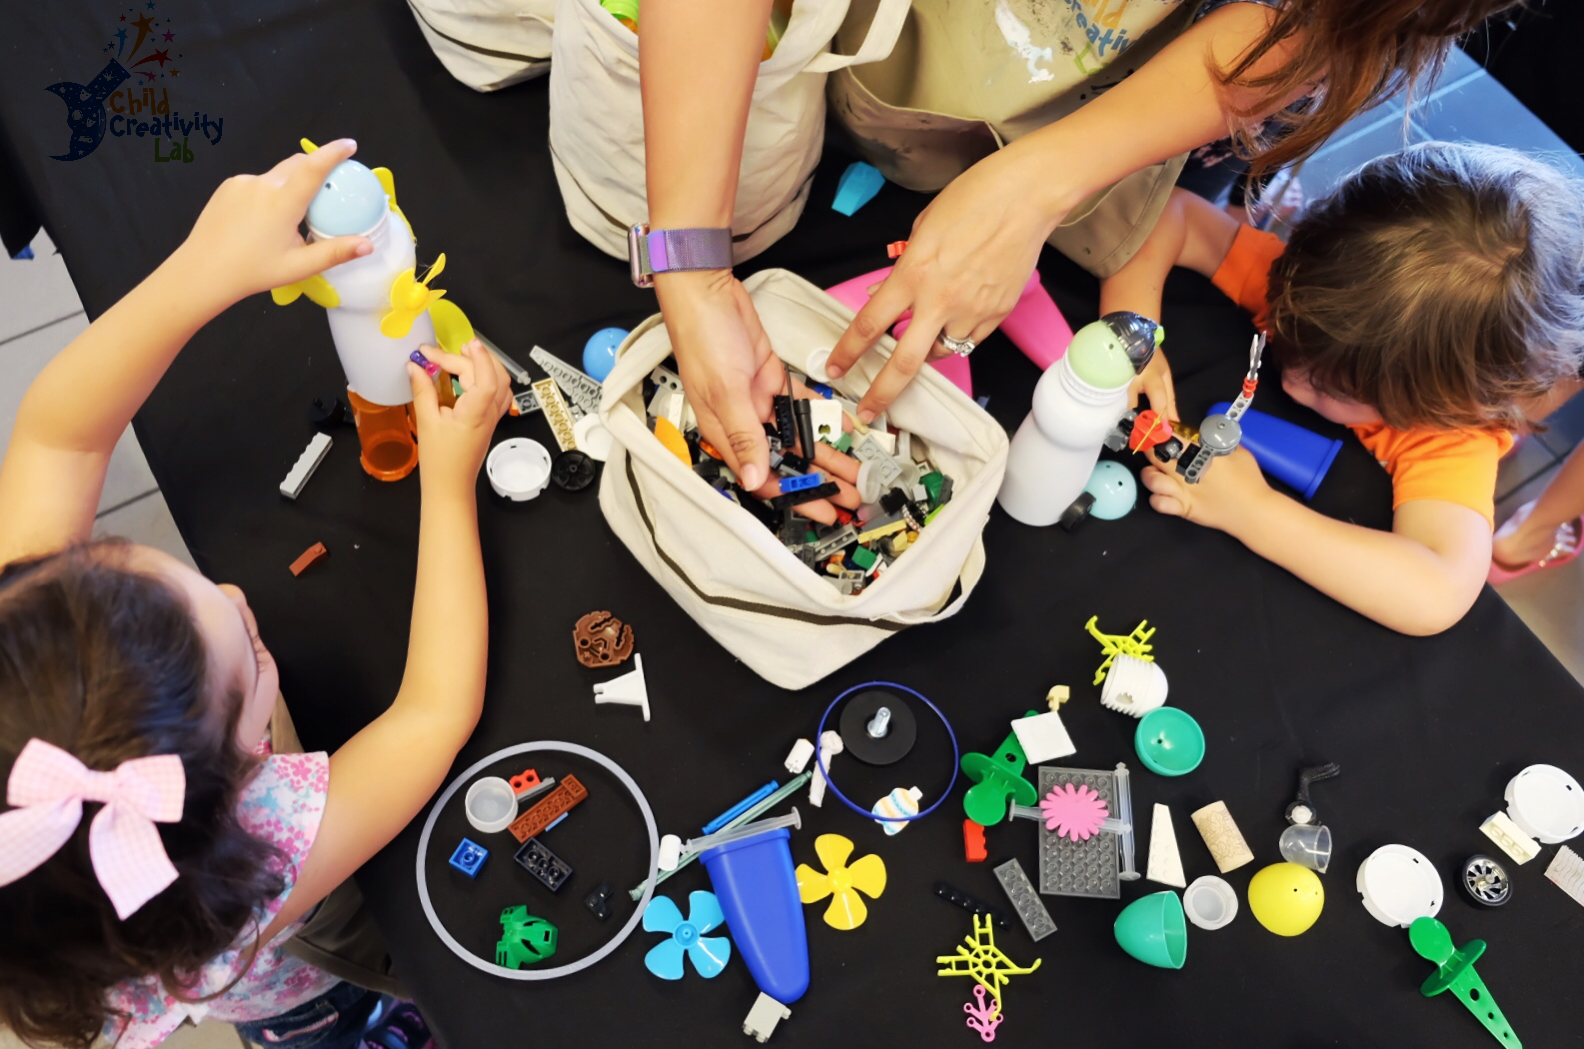 STEAM+CREATIVITY CHALLENGE @ YOUR LOCATION - STANDARD WORKSHOPSAvailable Dates: Monday - FridayAvailable Booking Times: 8:30 am - 2:30 pmDuration: up to 1.5 hoursCapacity: Min 15 children, Max 32 childrenCost: $300/workshop (Discount available for Title 1 Schools)*AFTER-SCHOOL WORKSHOPSAvailable Dates: Monday - FridayAvailable Booking Times: 1:30 pm - 4:00 pmDuration: 1 hourCapacity: Min 8 students, Max 15 studentsCost for 8 Week Program: $1200 - $2400*Pick from an array of engaging, STEM-based challenges for the participants at your location. Students work in teams of two or three to complete their STEM challenge and together go through four stages of Design Thinking—Explore, Imagine, Create, & Reflect. *Workshop costs subject to enrollment and transportation fees.